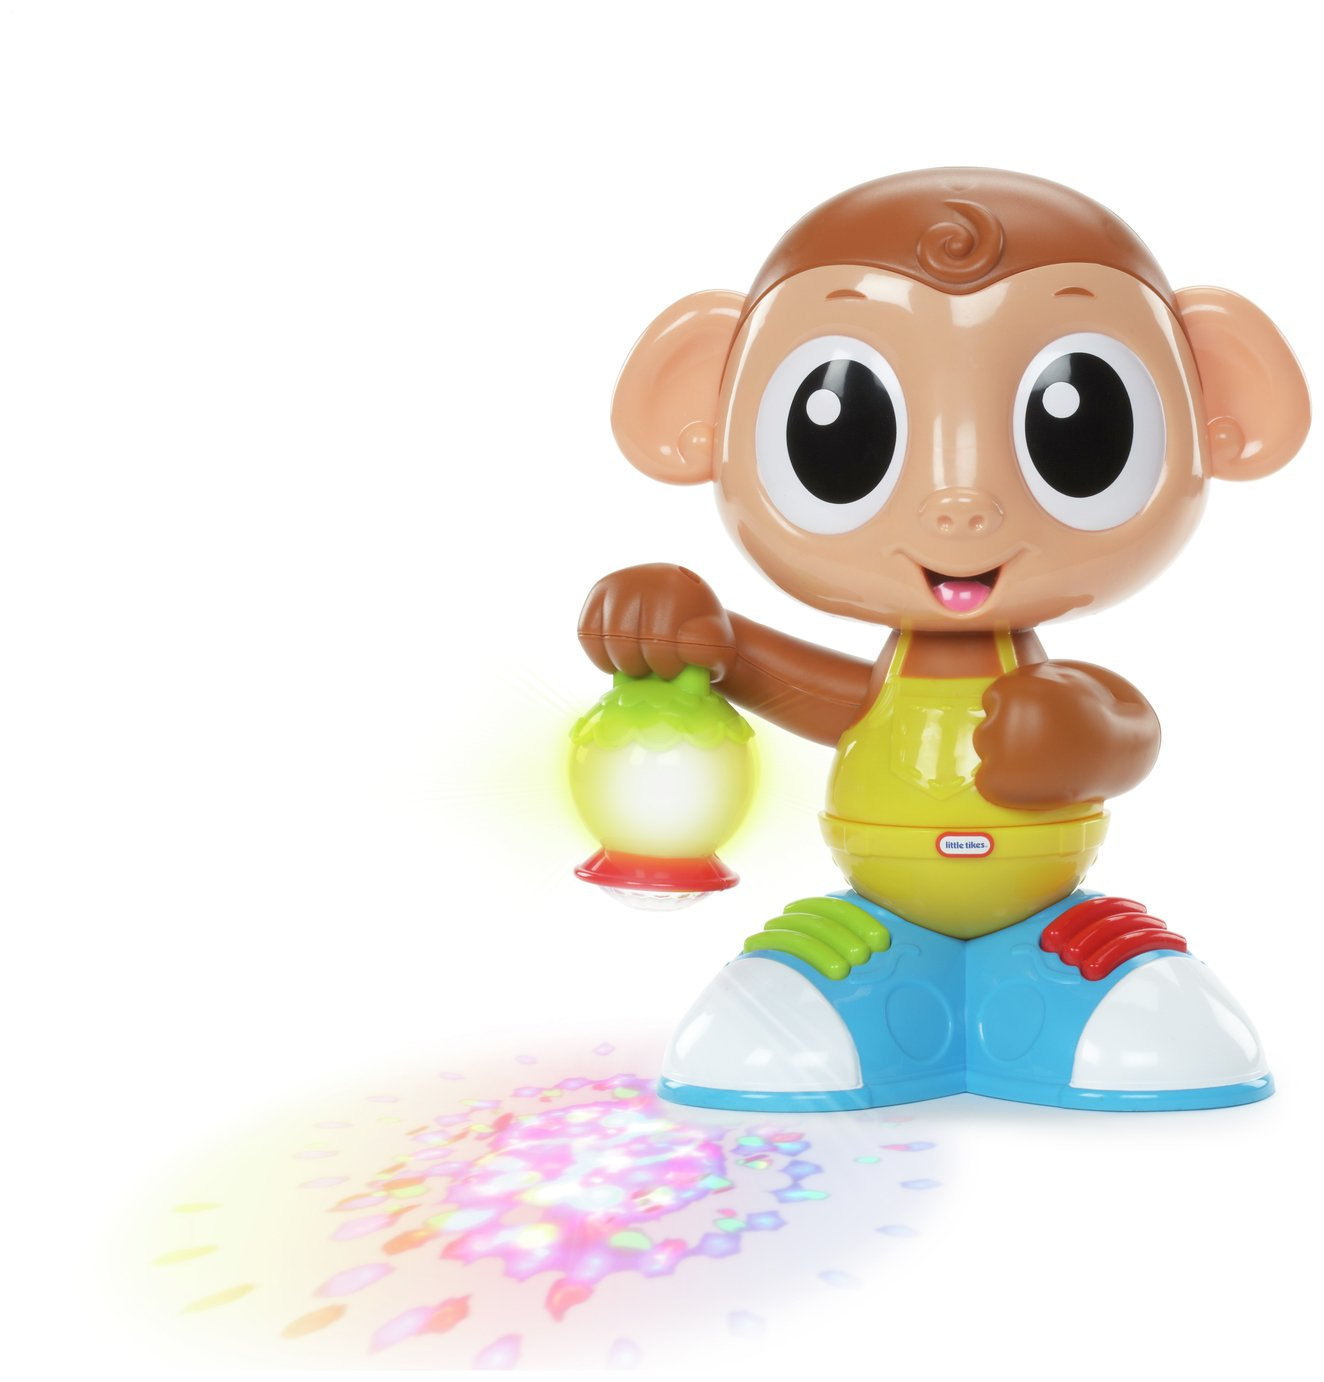 Little Tikes Moving Lights Monkey